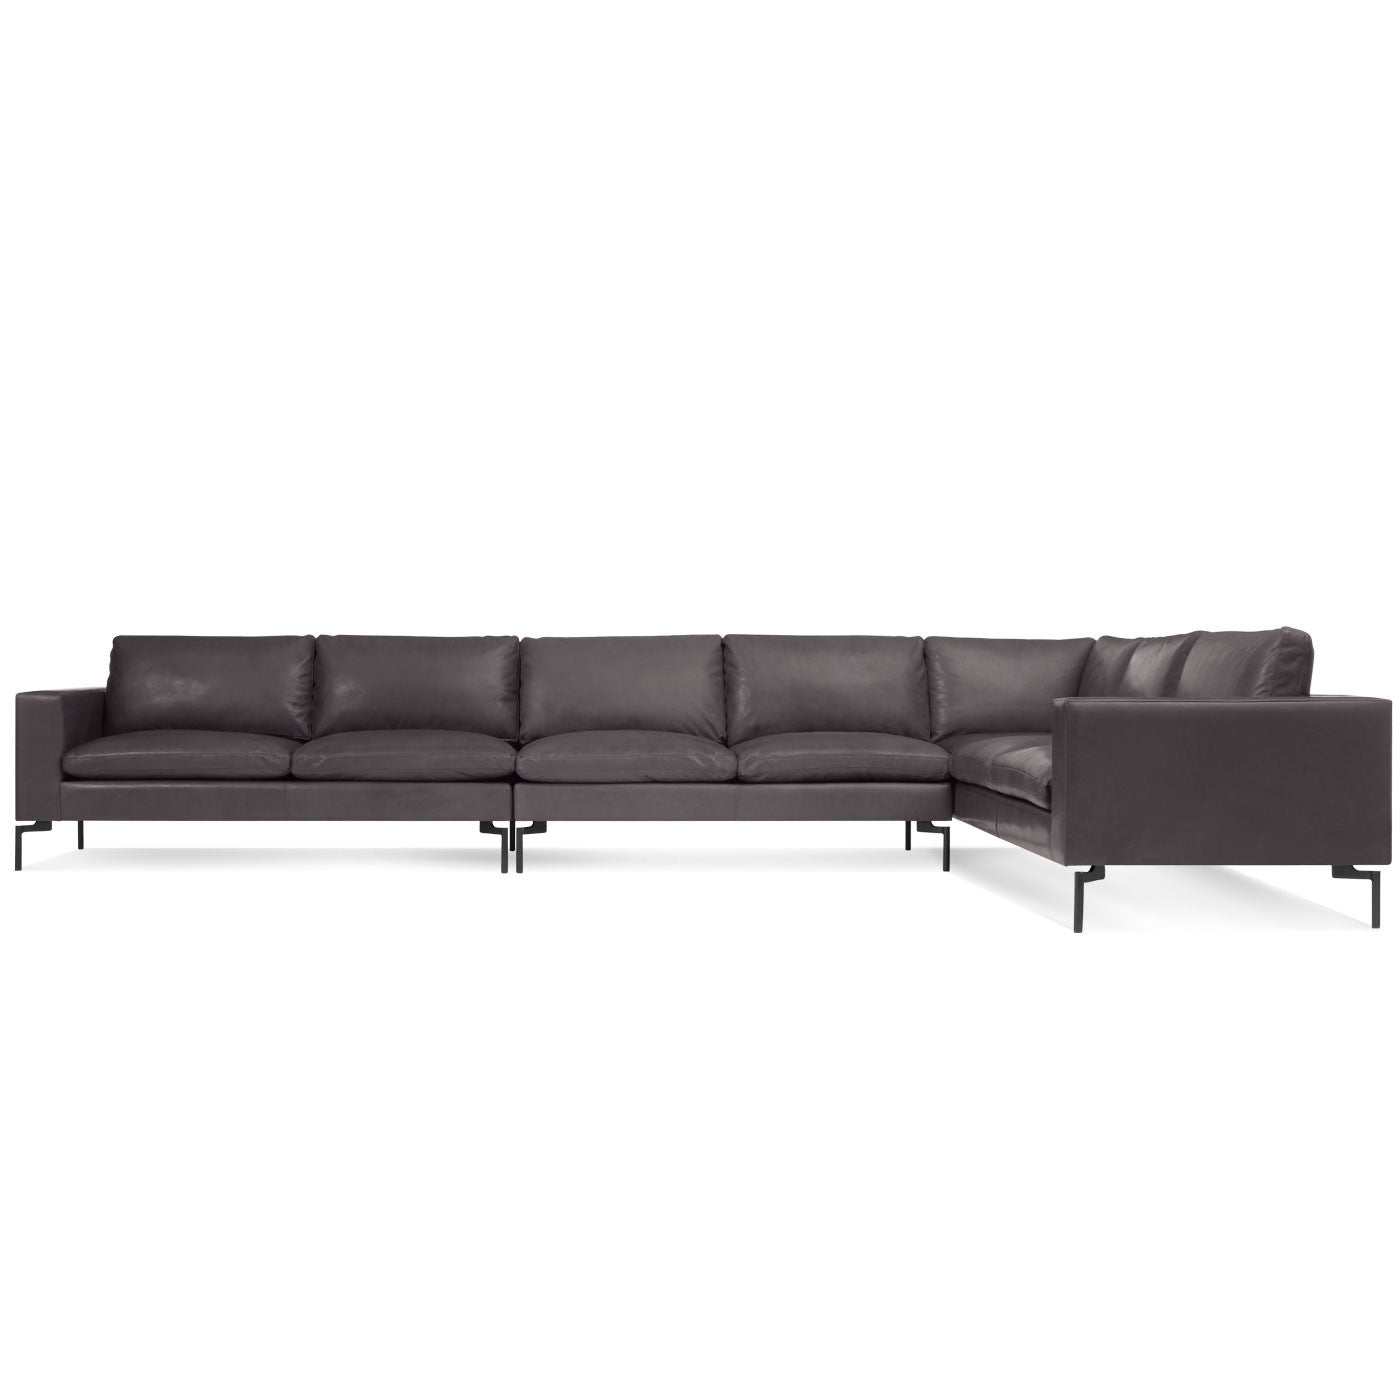 "New Standard 162"" Leather Sofa Sectional"